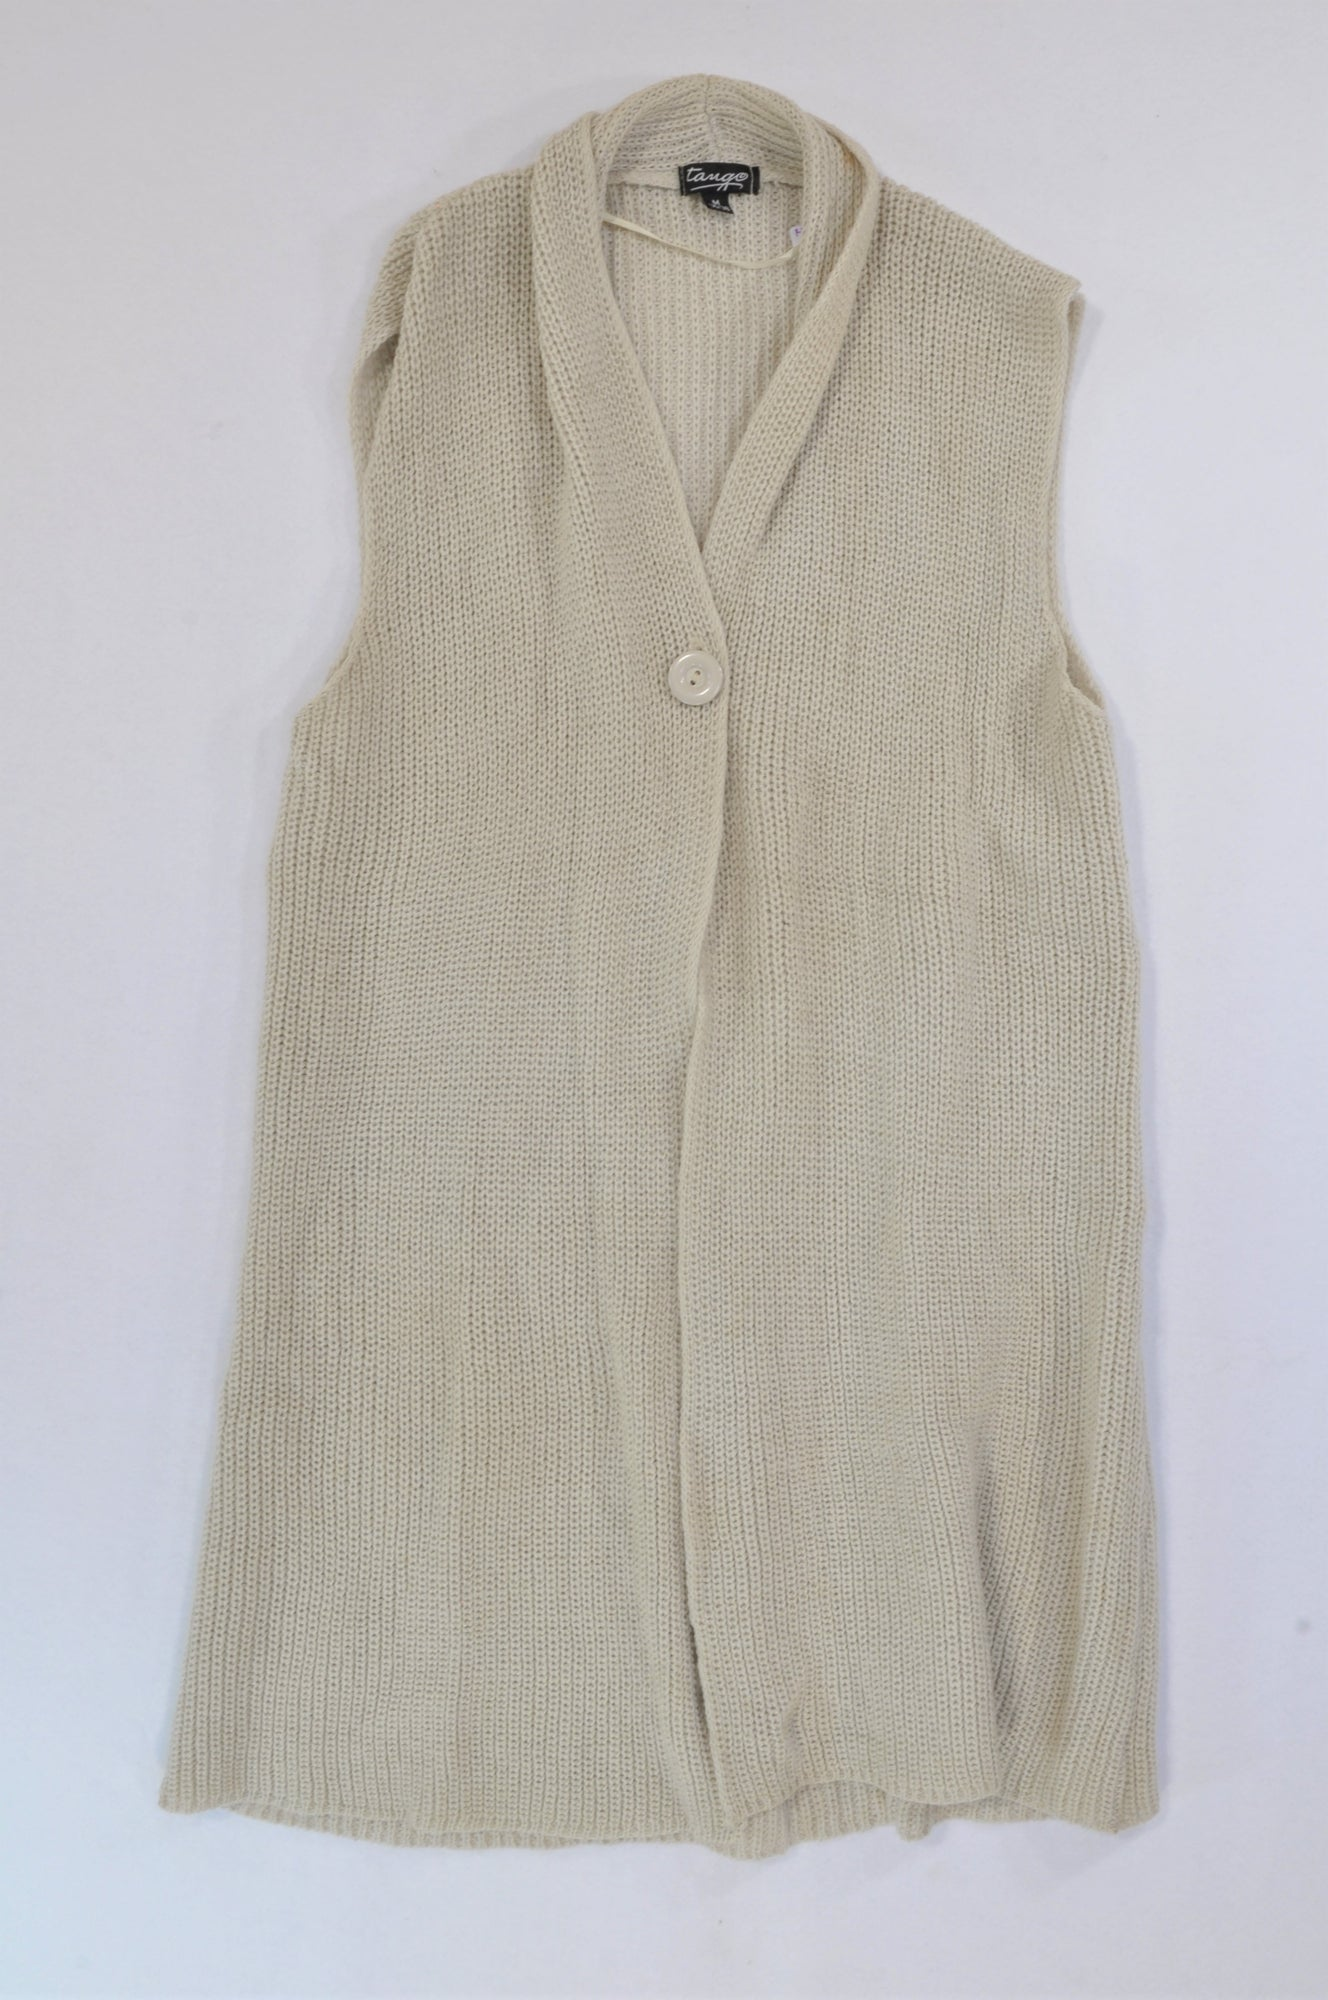 Tango Beige Cable Knit Cardigan Women Size 36